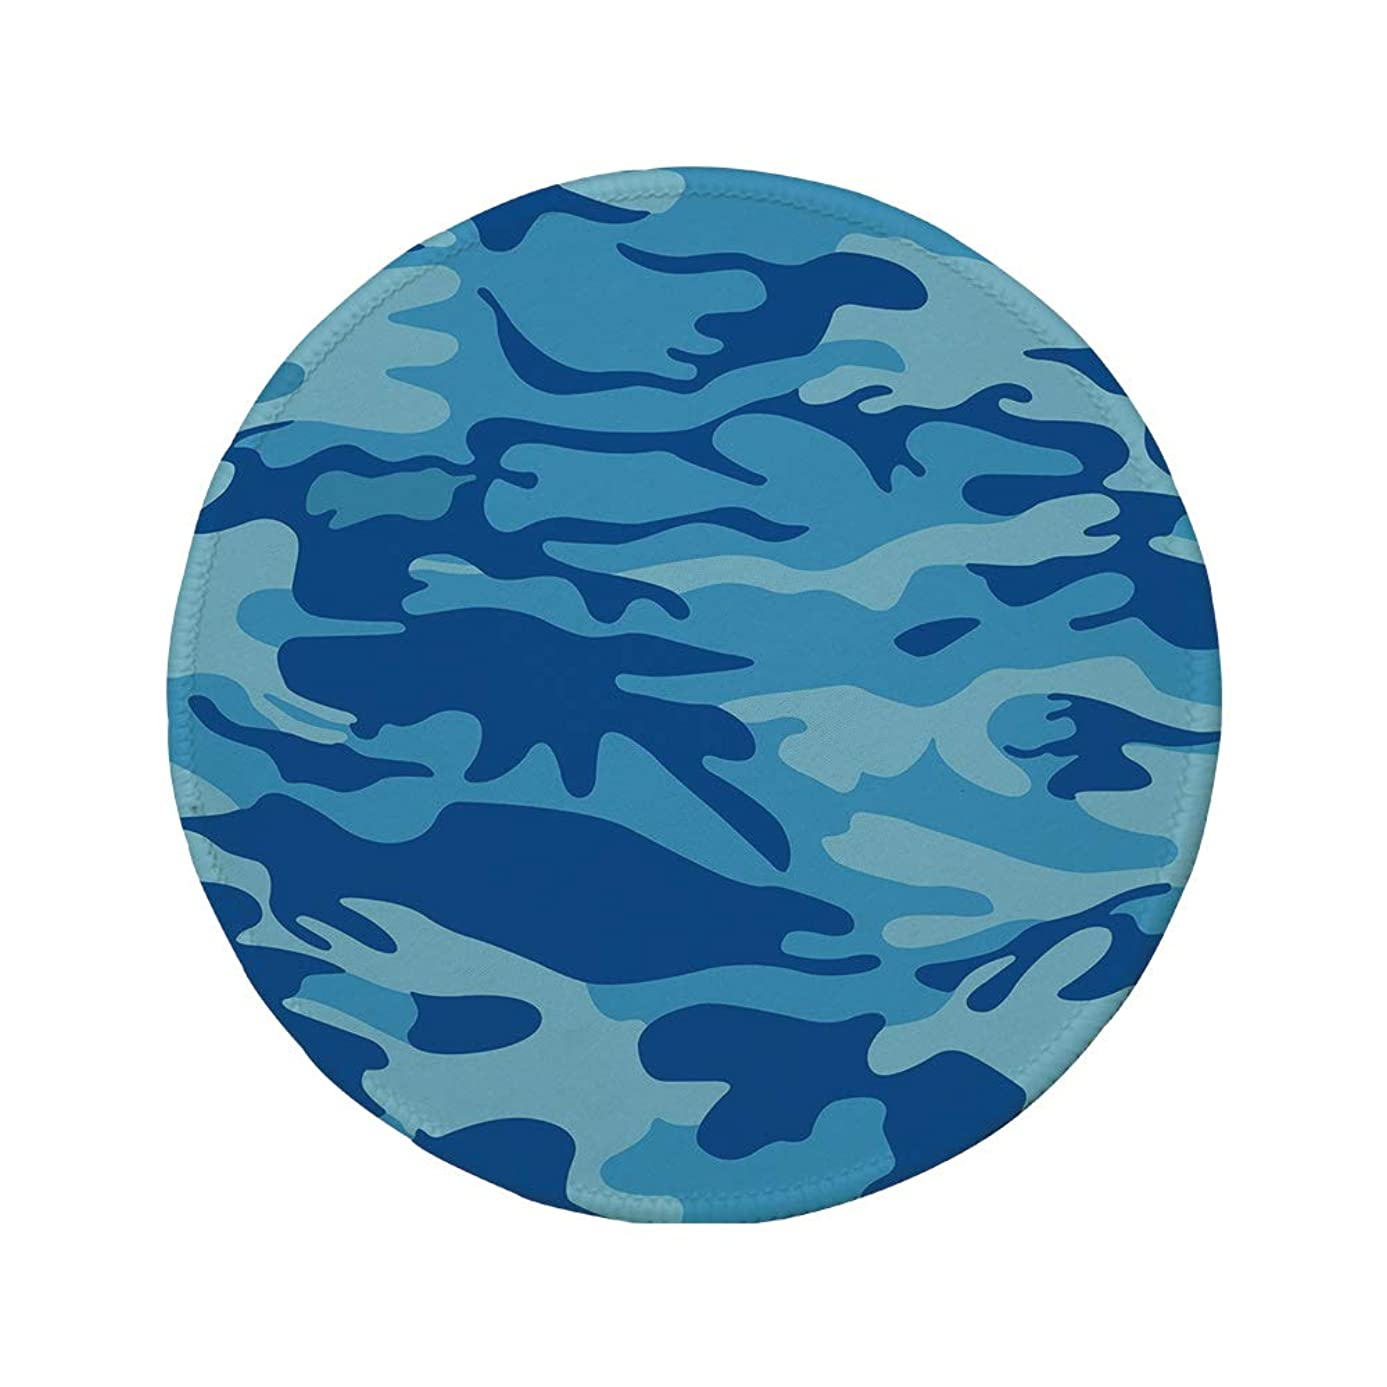 Non-Slip Rubber Round Mouse Pad,Camouflage,Abstract Camo Navy Military Costume Concealment from The Enemy Hiding,Pale Blue Navy Blue,11.8